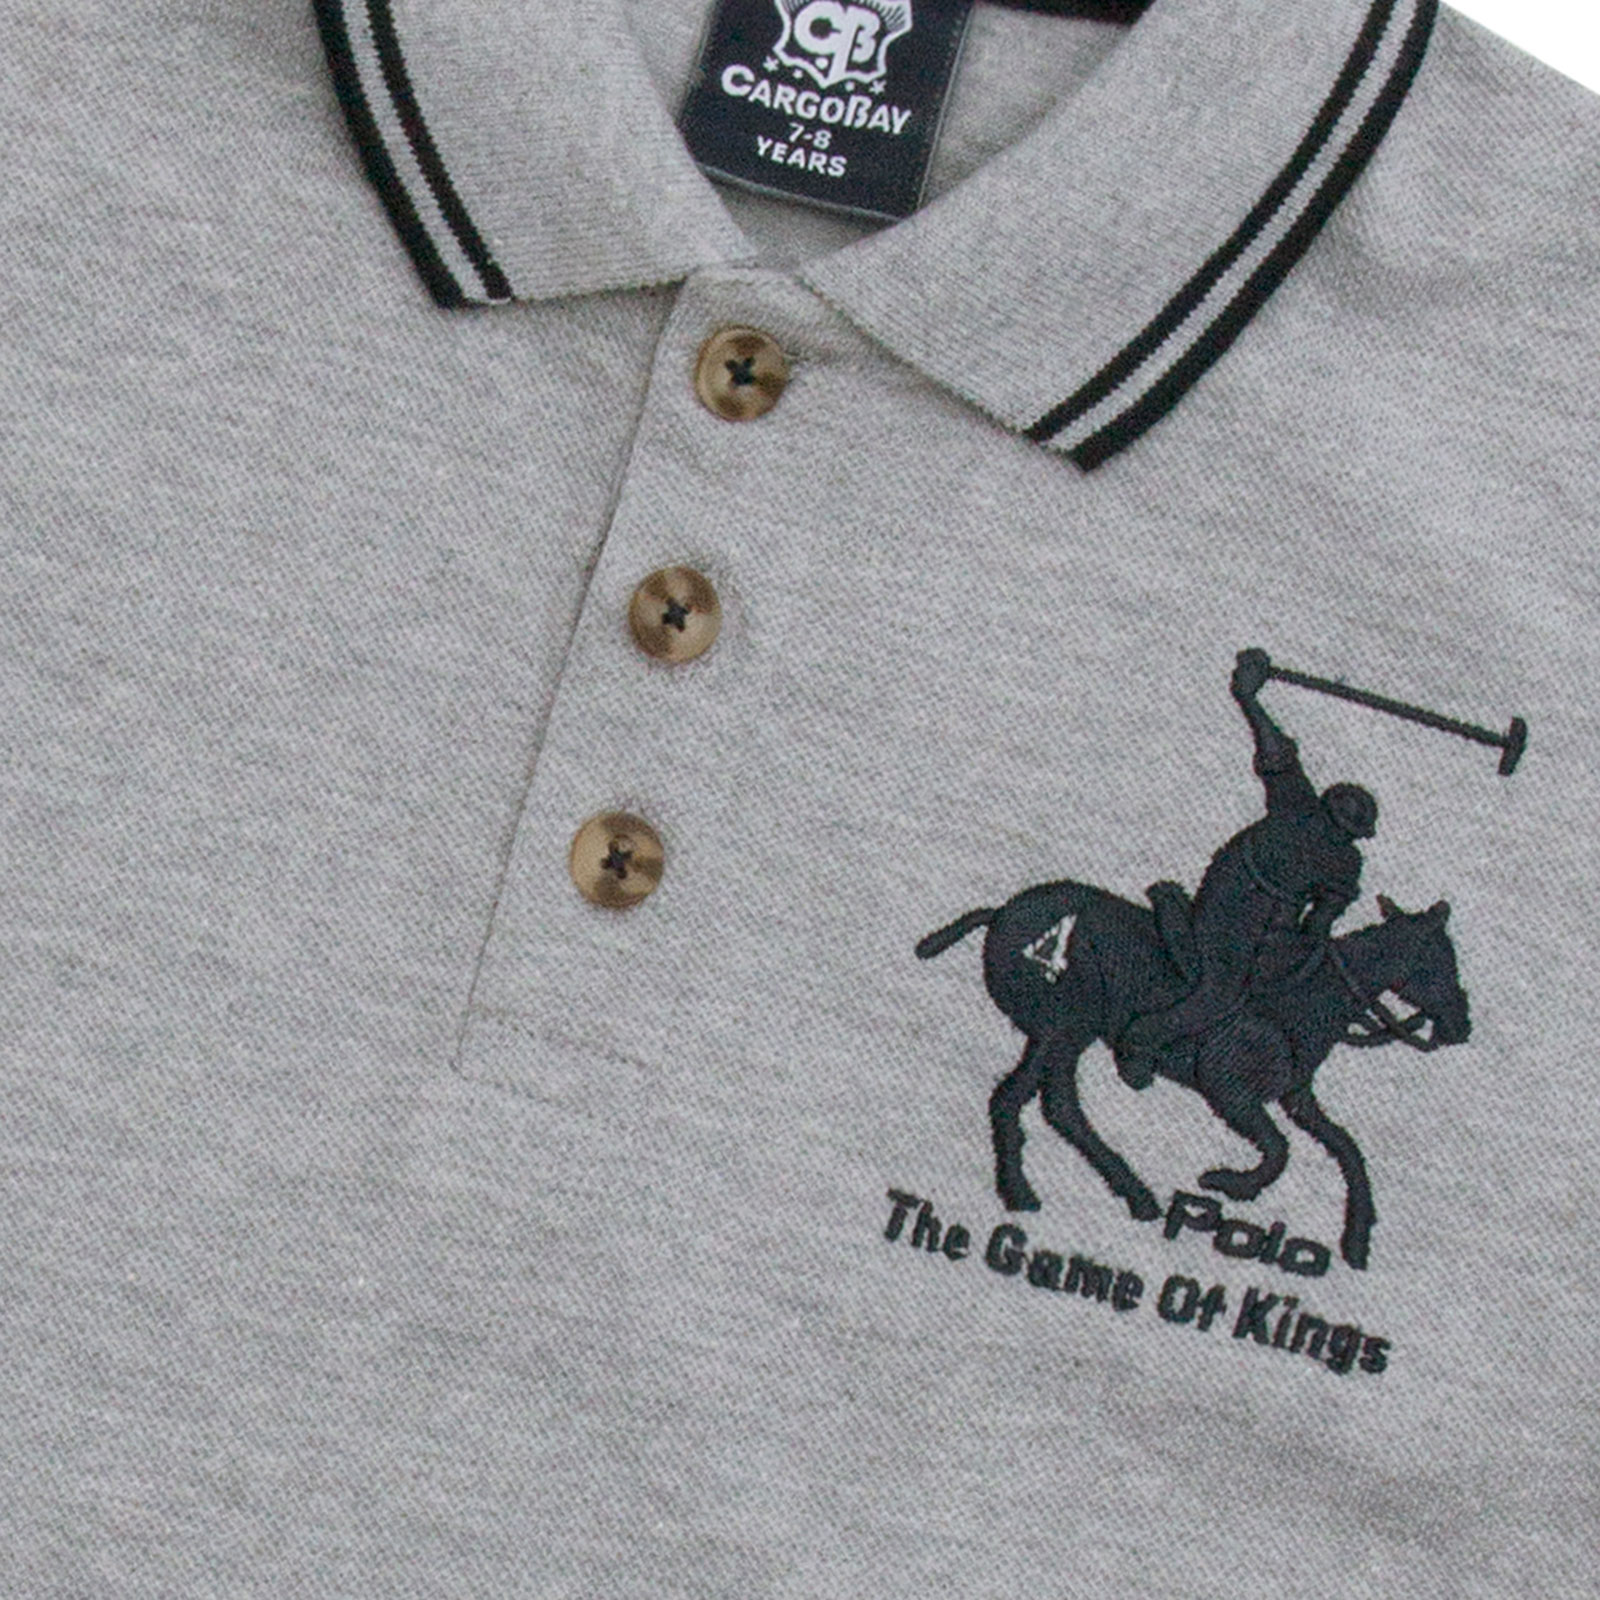 Boys-T-Shirt-Horse-Embroidery-Polo-Cotton-Top-Age-2-3-4-5-6-7-8-9-10-11-12-13-Yr thumbnail 19